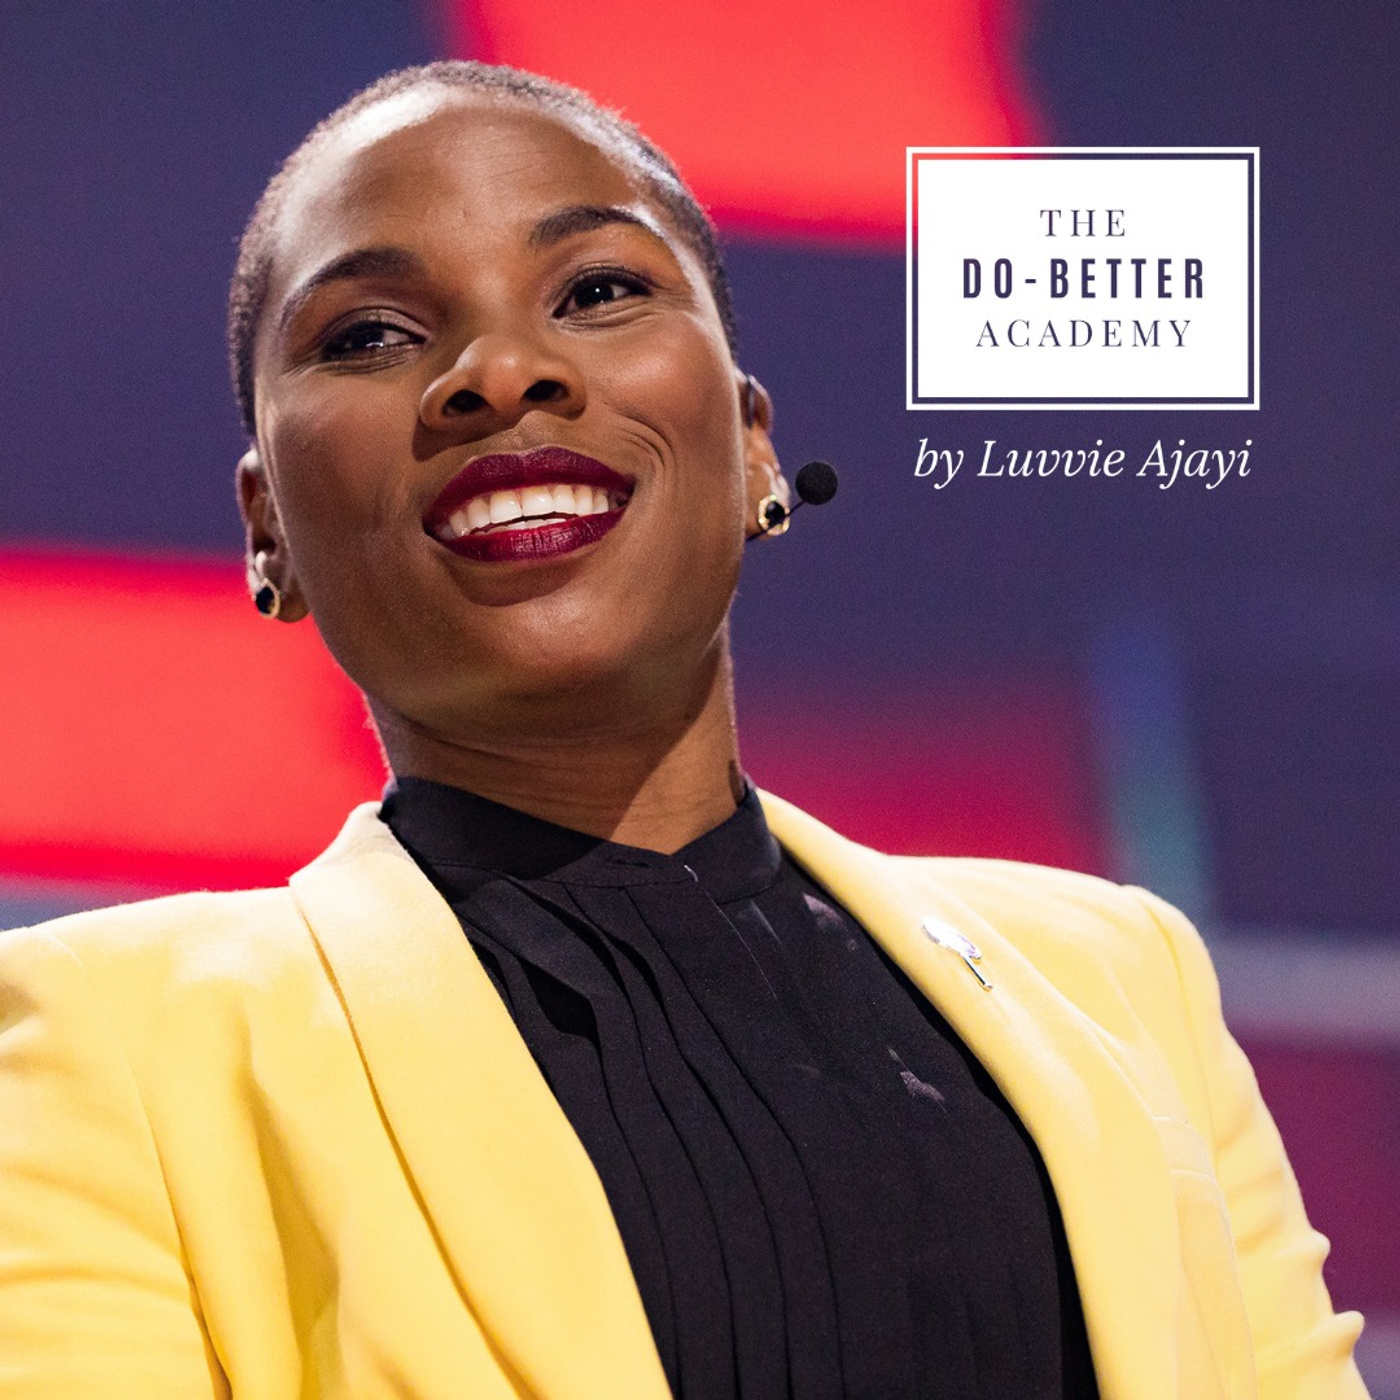 The Do-Better Academy by Luvvie Ajayi Launches